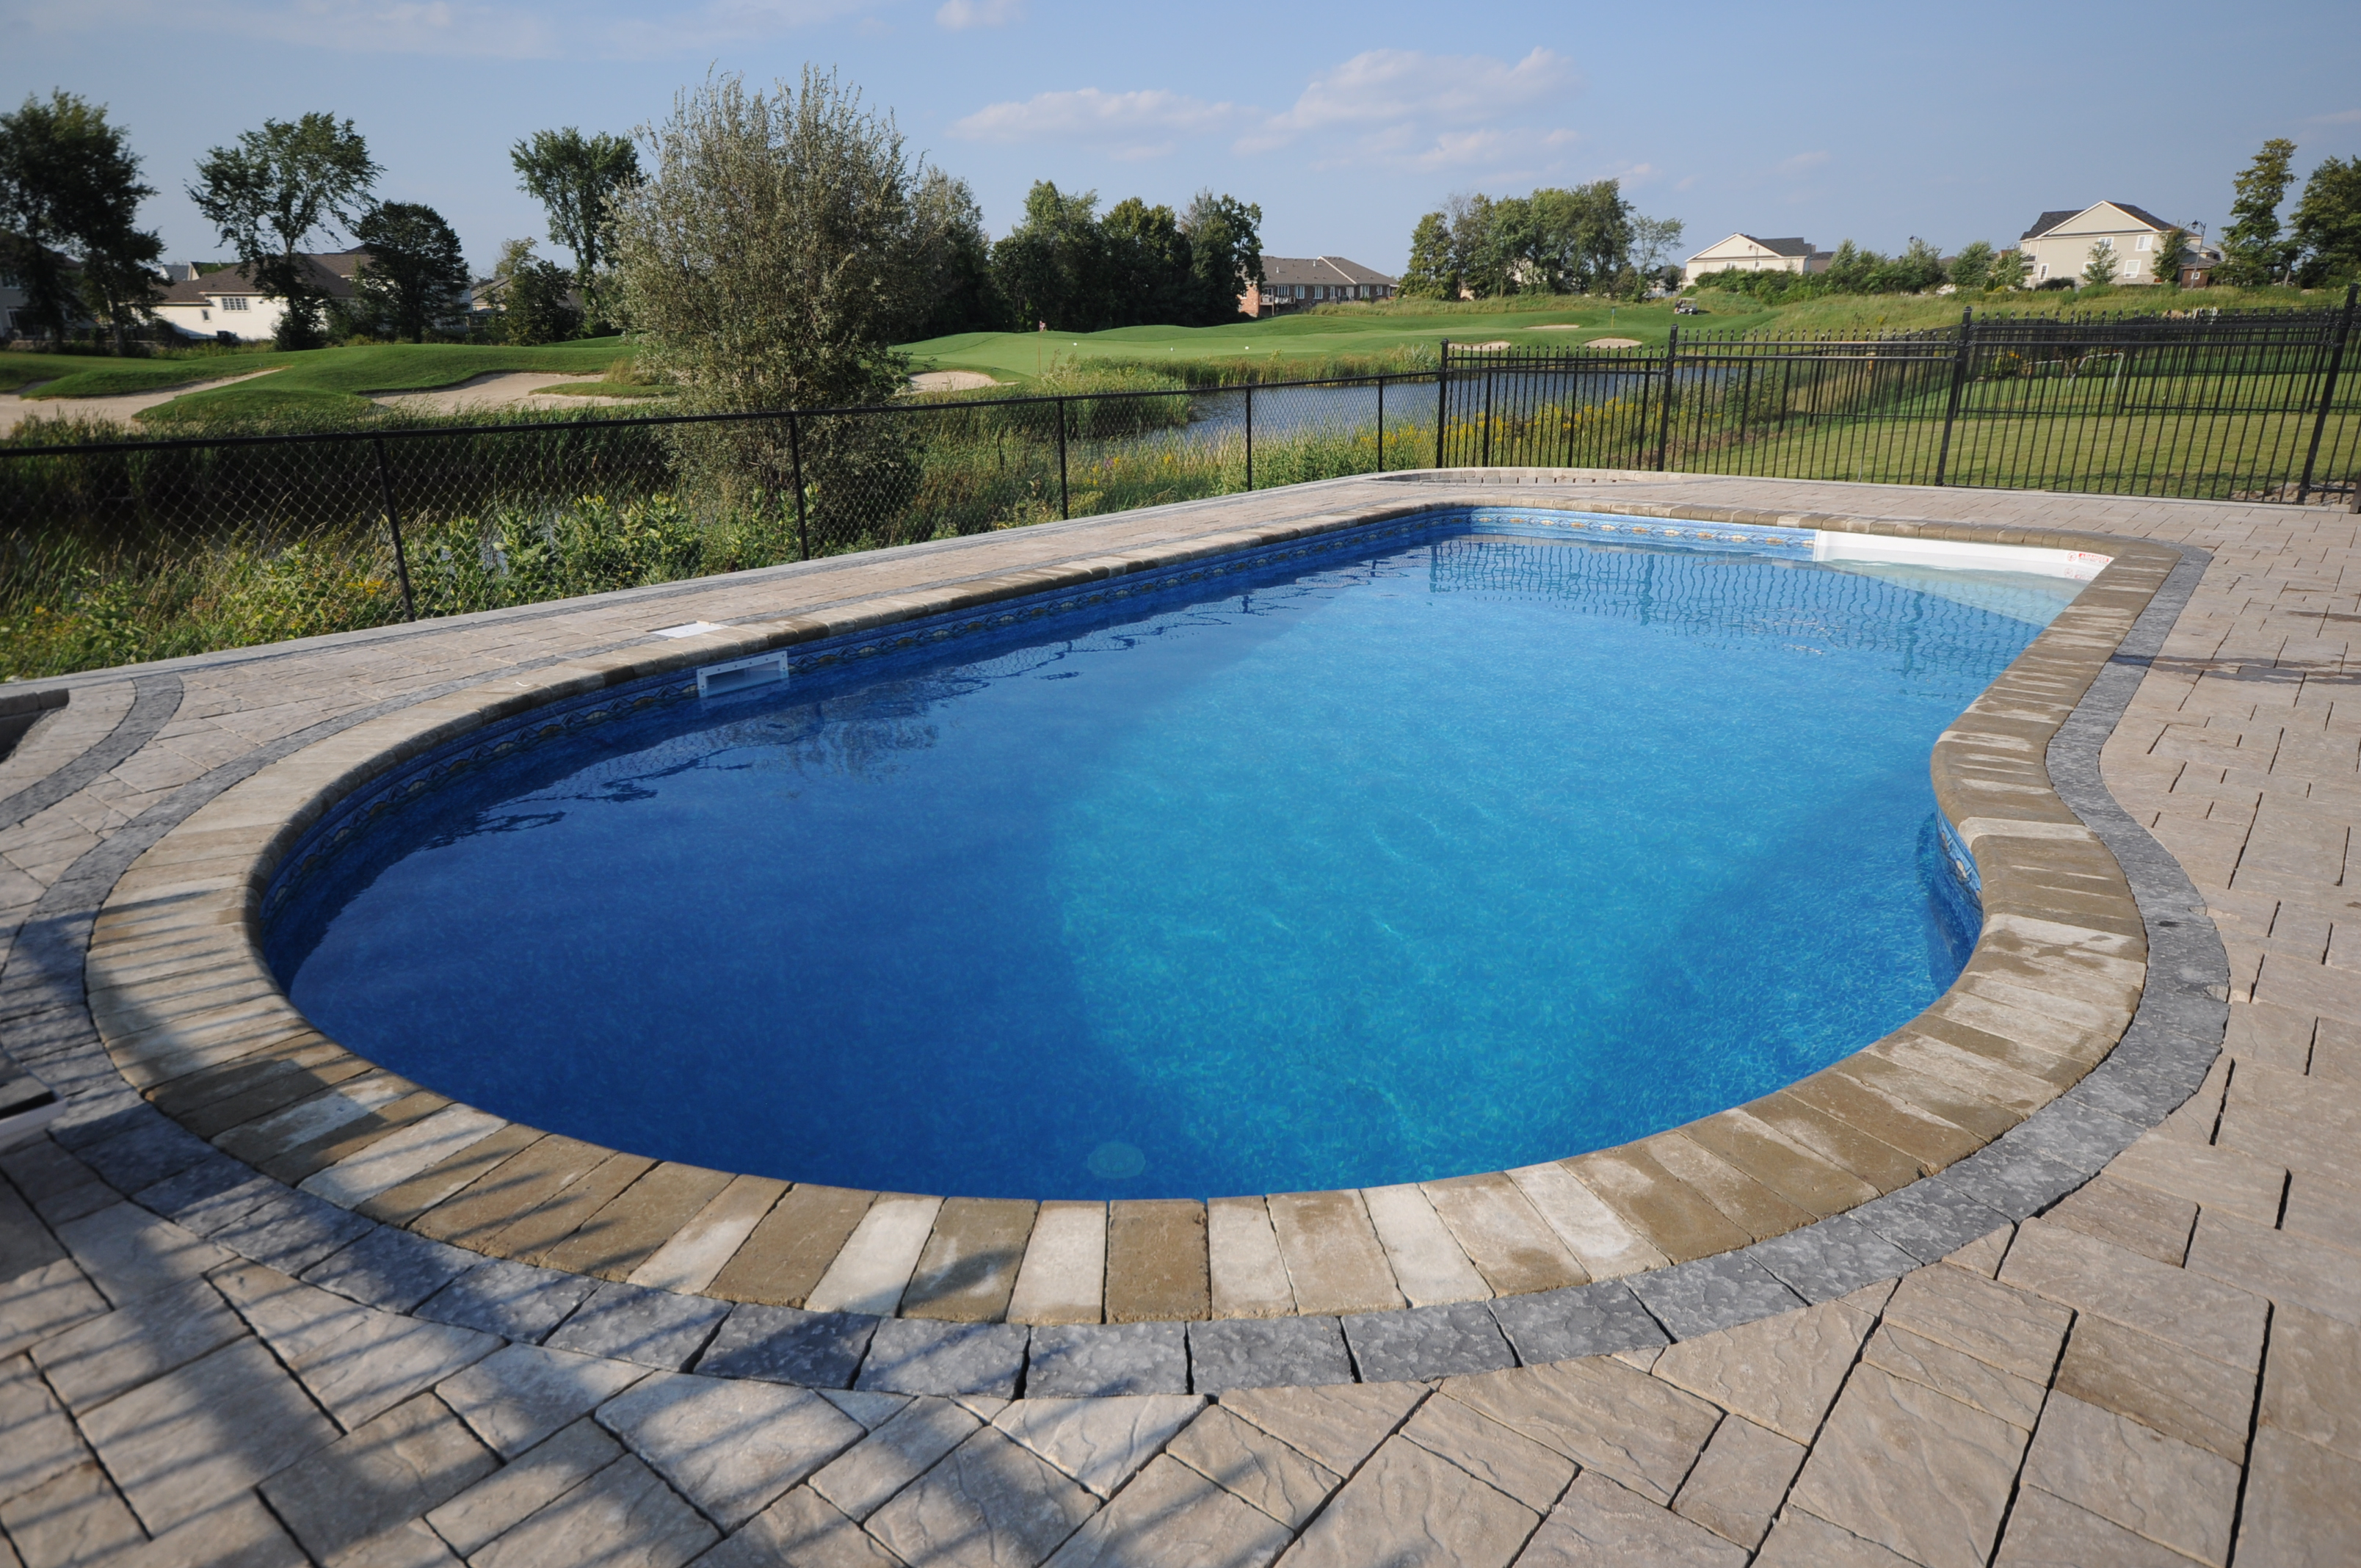 Inground pools gallery jmd pools quality design for for Pool gallery